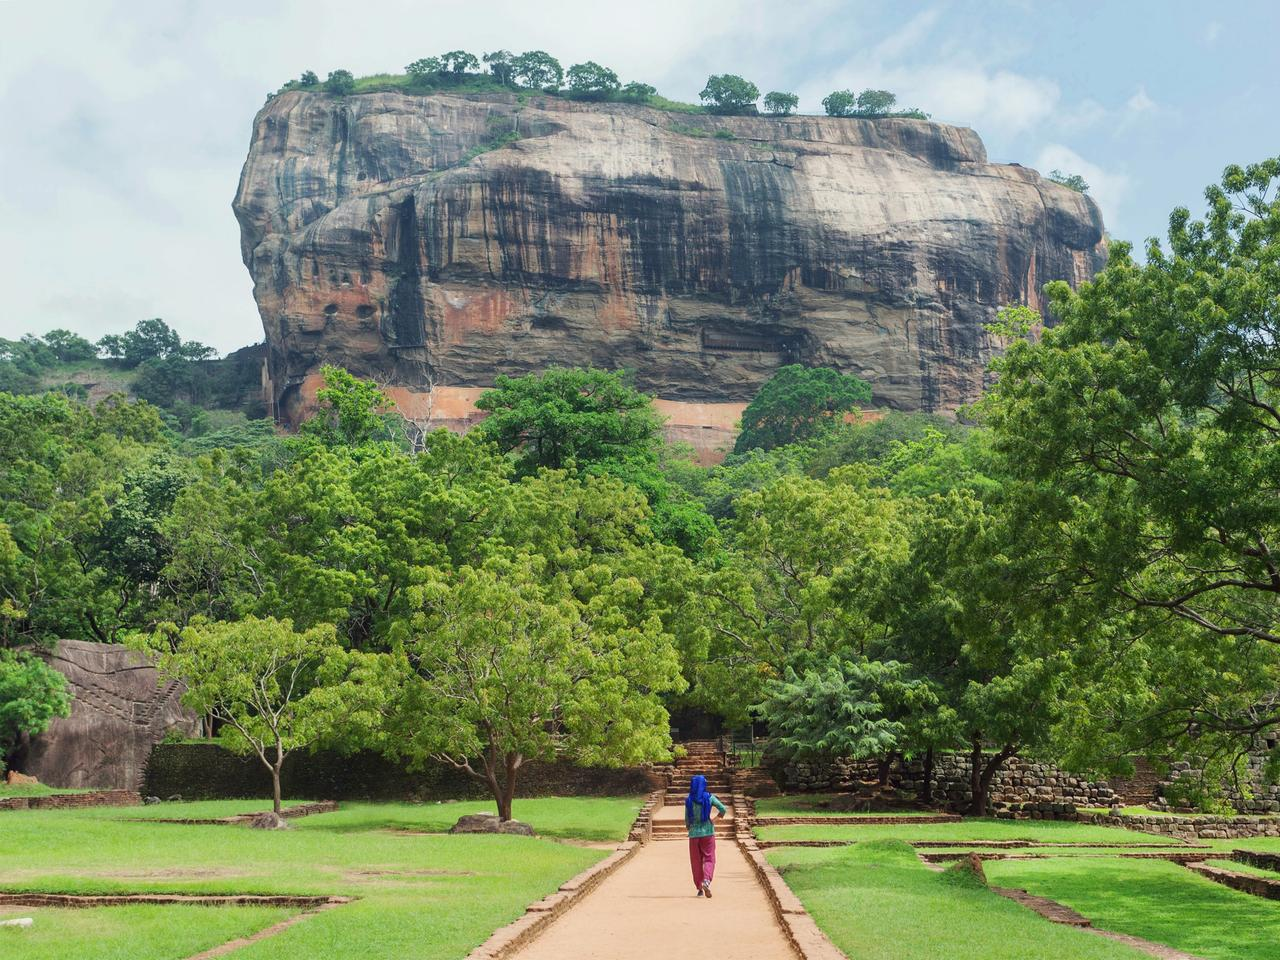 Lonely woman in headscarf walking to famous landmark Sigiriya rock with green trees forest around, Sri Lanka. UNESCO world heritage site